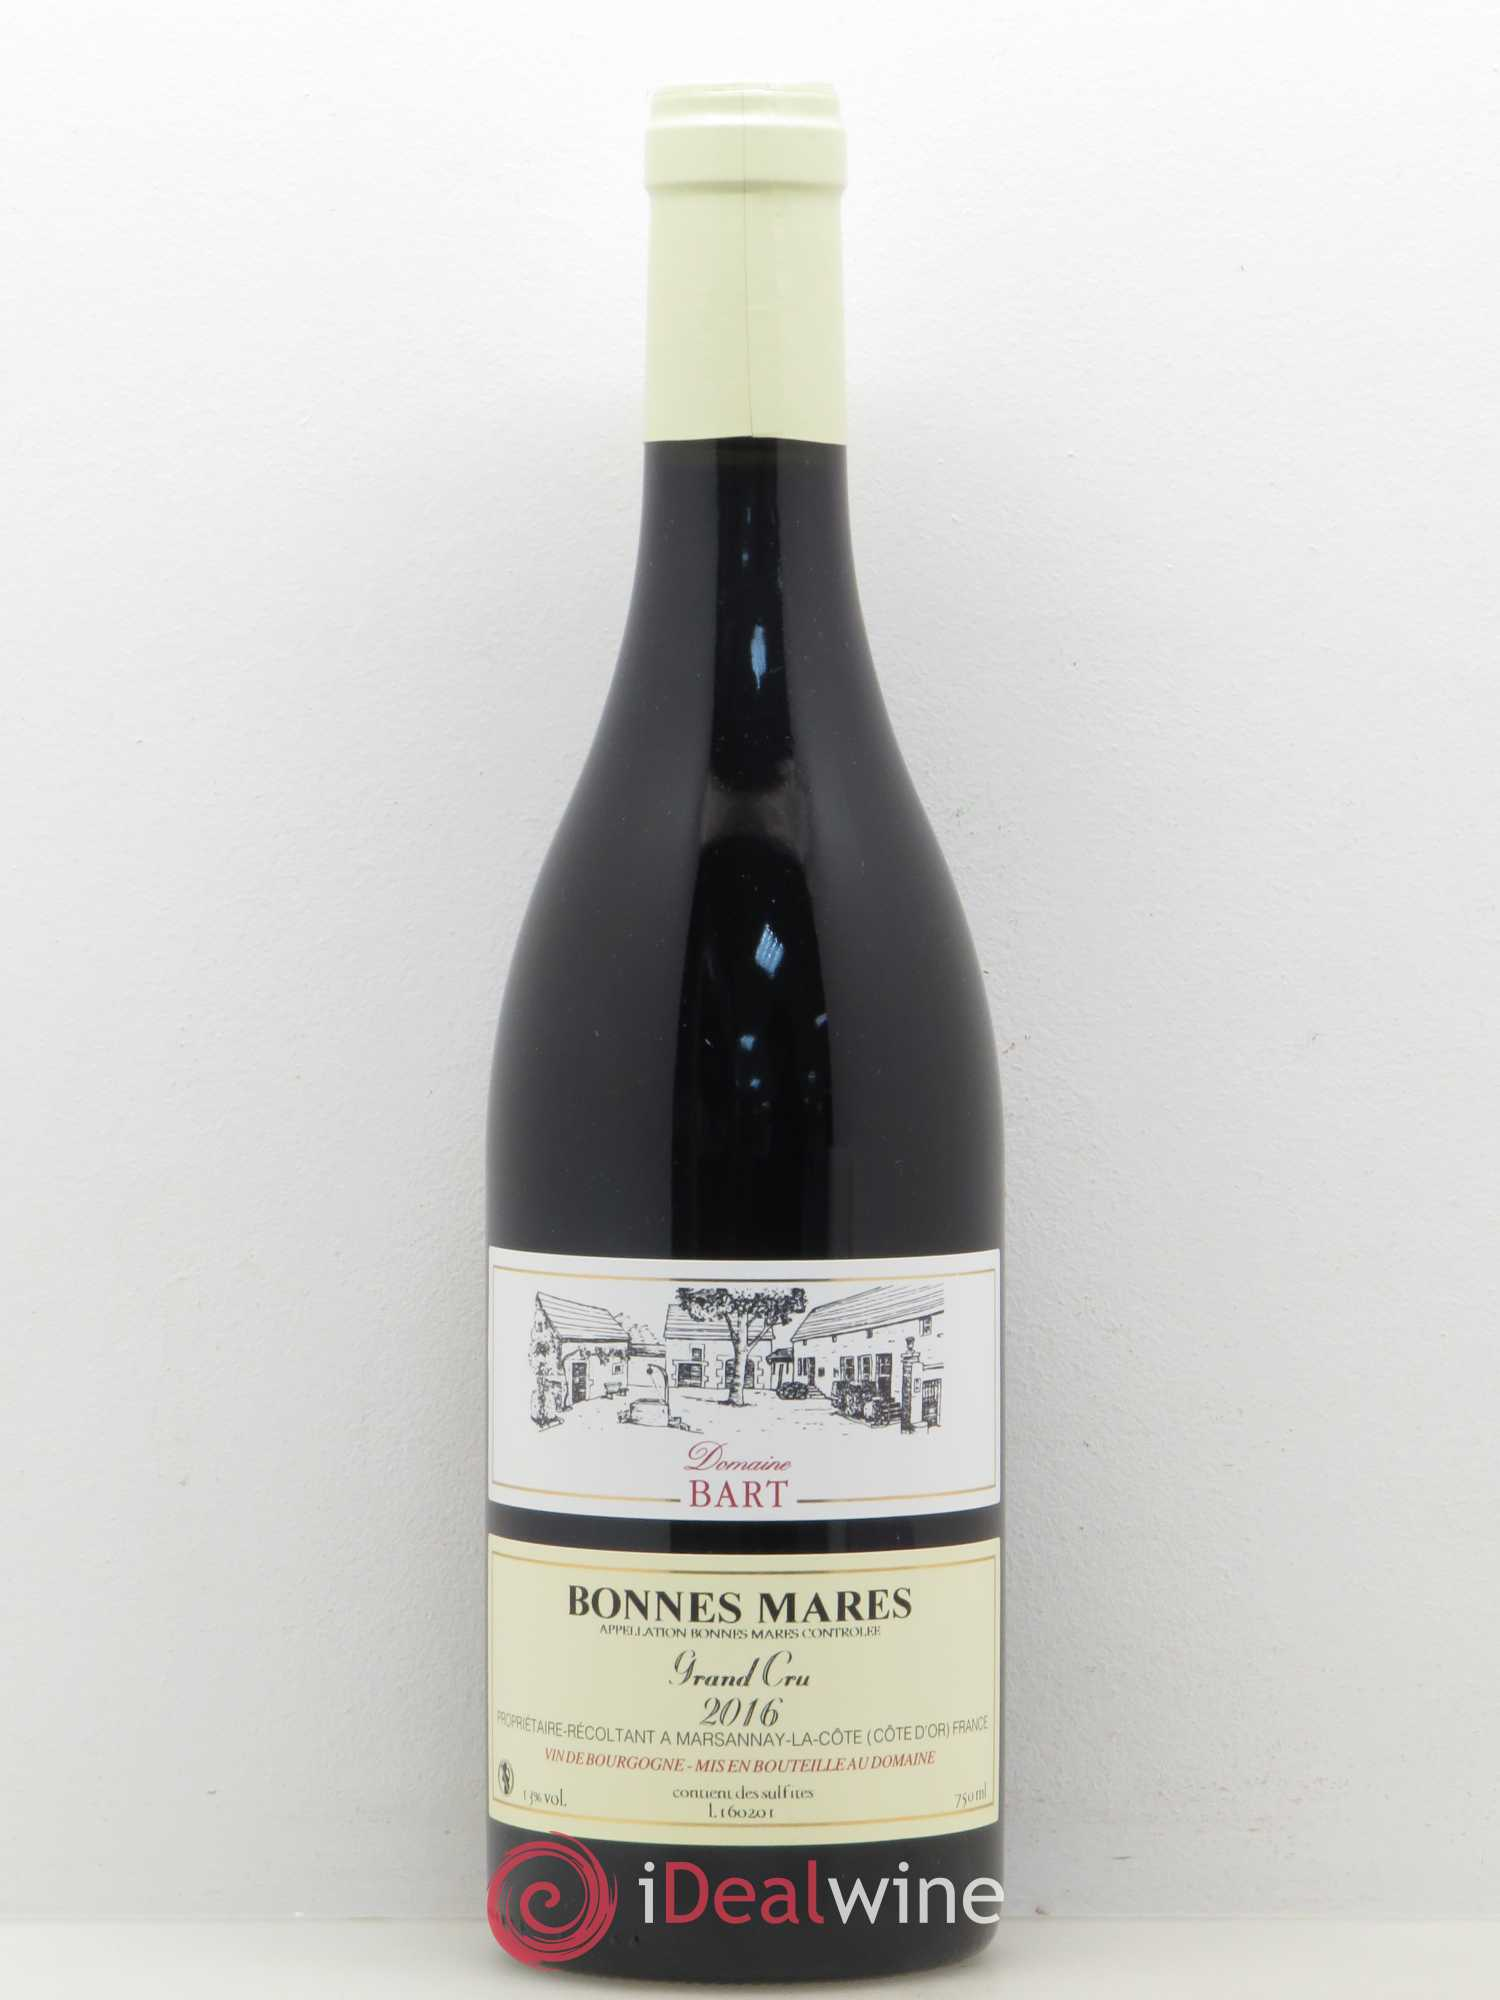 Bonnes-Mares Grand Cru Domaine Bart (no reserve) 2016 - Lot of 1 Bottle